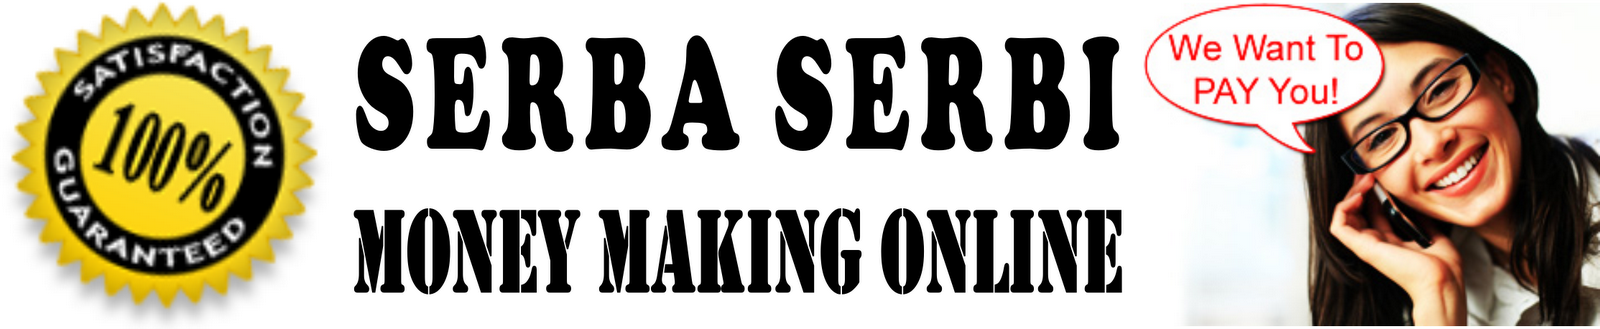 SERBA SERBI MONEY MAKING ONLINE